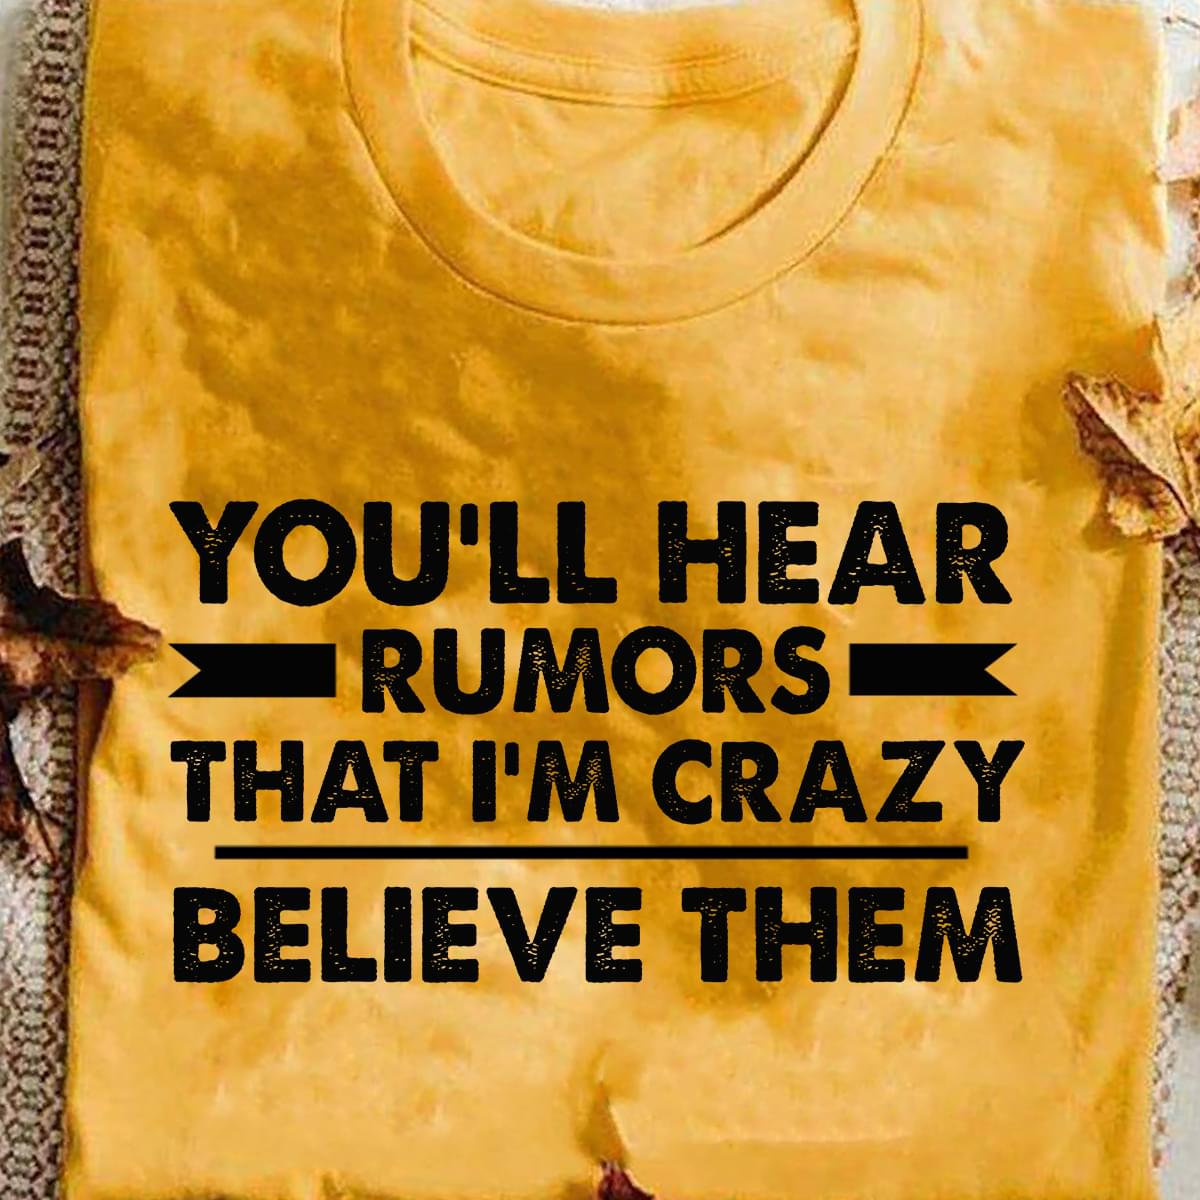 Youll Hear Rumors That Im Crazy Believe Them T Shirt cotton t-shirt Hoodie Mug